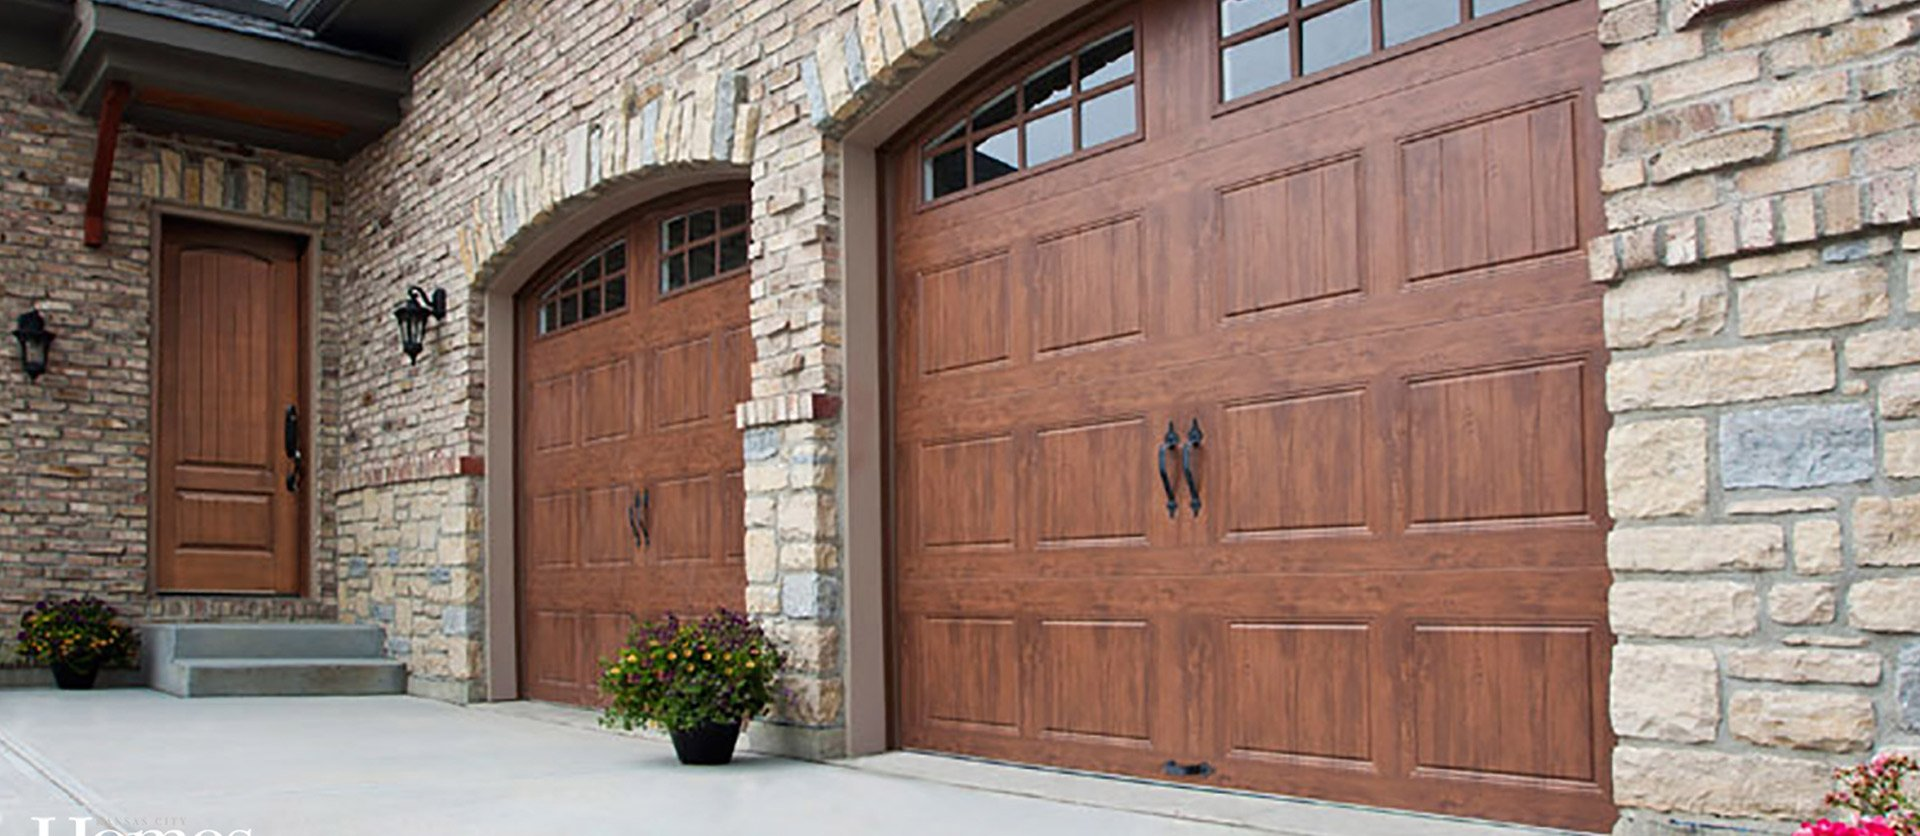 Lowell garage door repair affordable garage door garage door affordable garage door repairs solutioingenieria Image collections